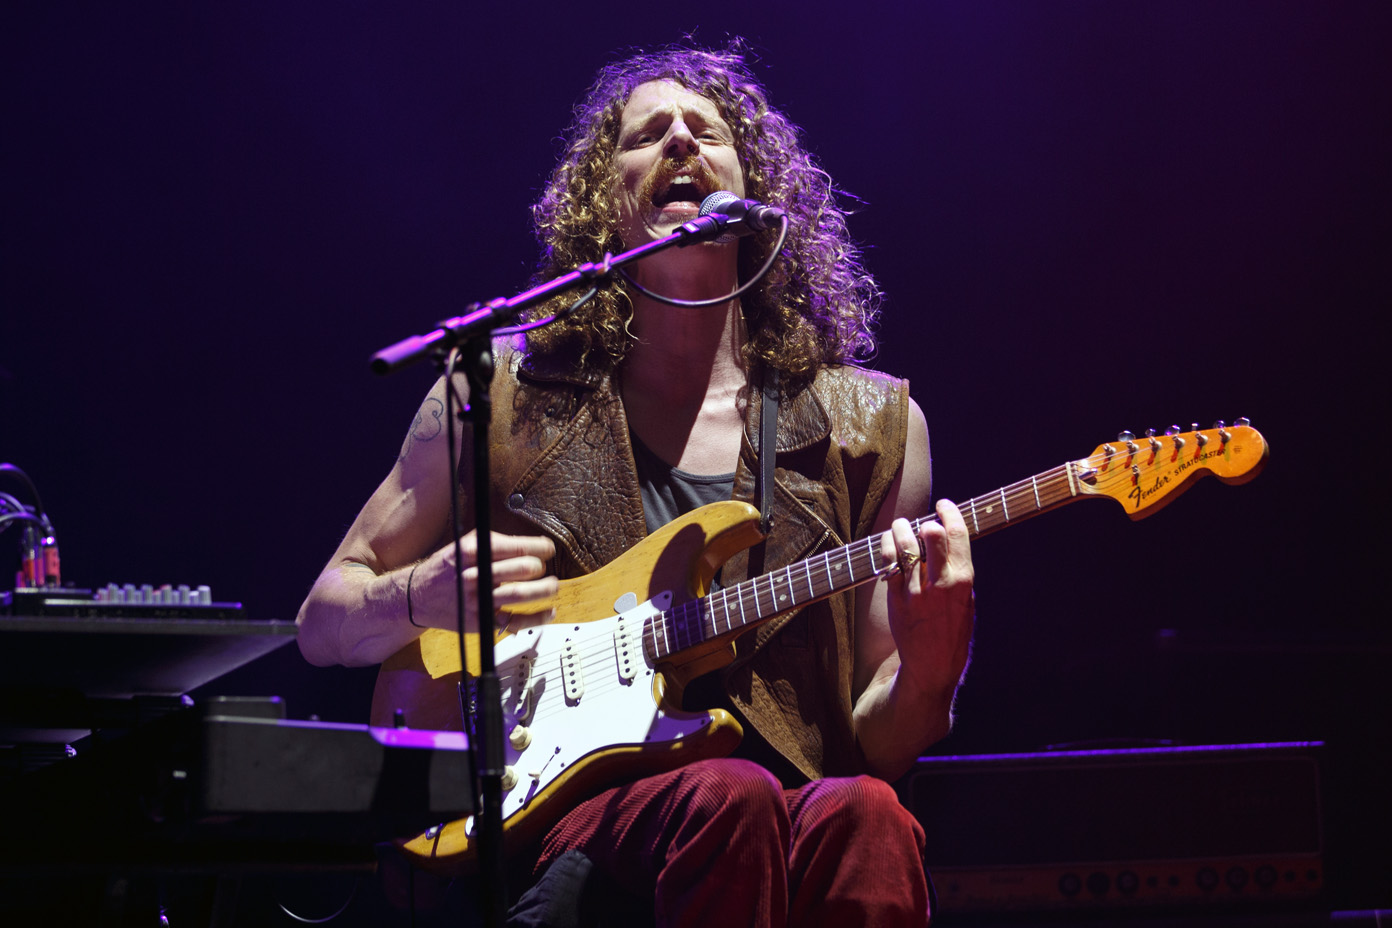 Blaine Harrison of Mystery Jets performing at the O2 Apollo Manchester on 27 June 2017. Photo: Katy Blackwood